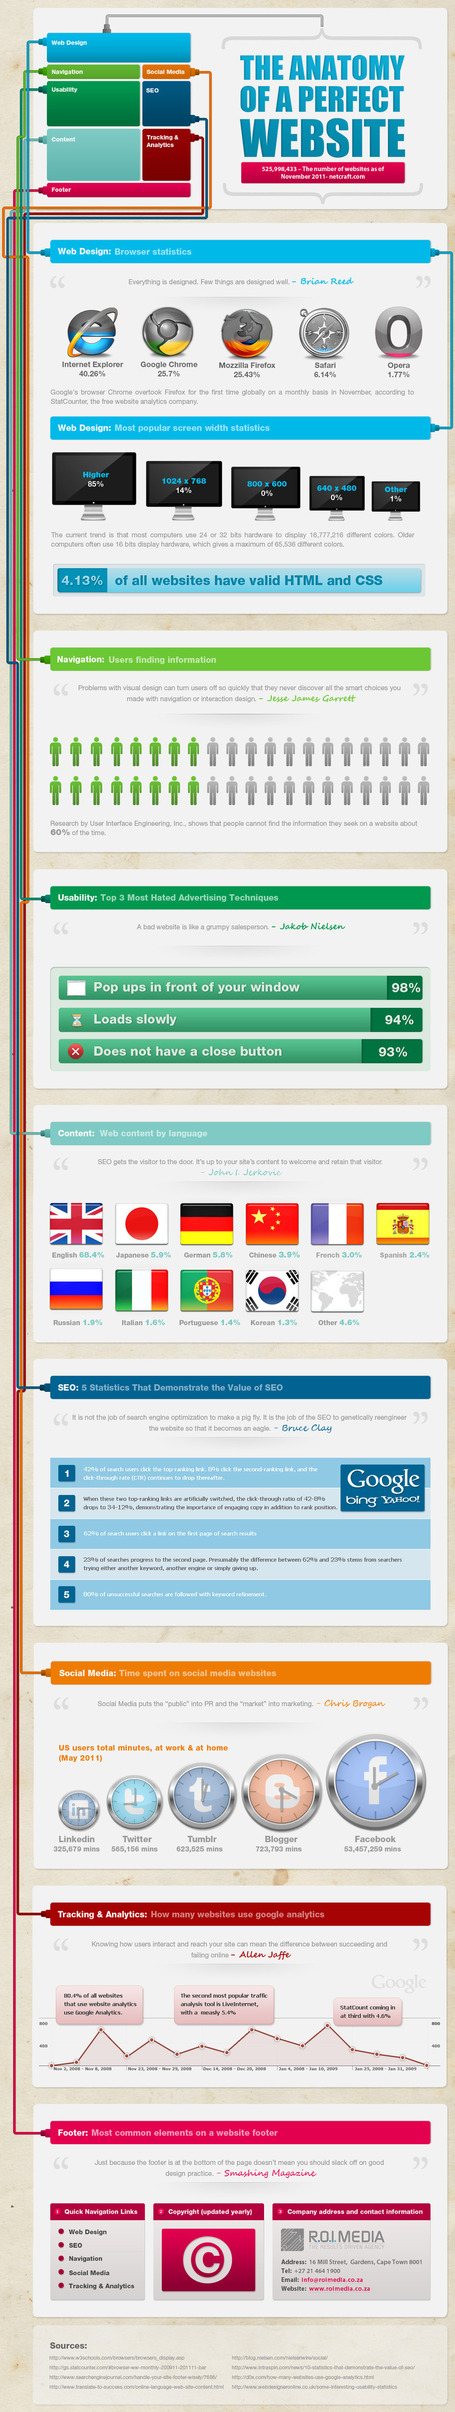 The Anatomy of a Great Website: #Infographic | Anatomy, Website and ...